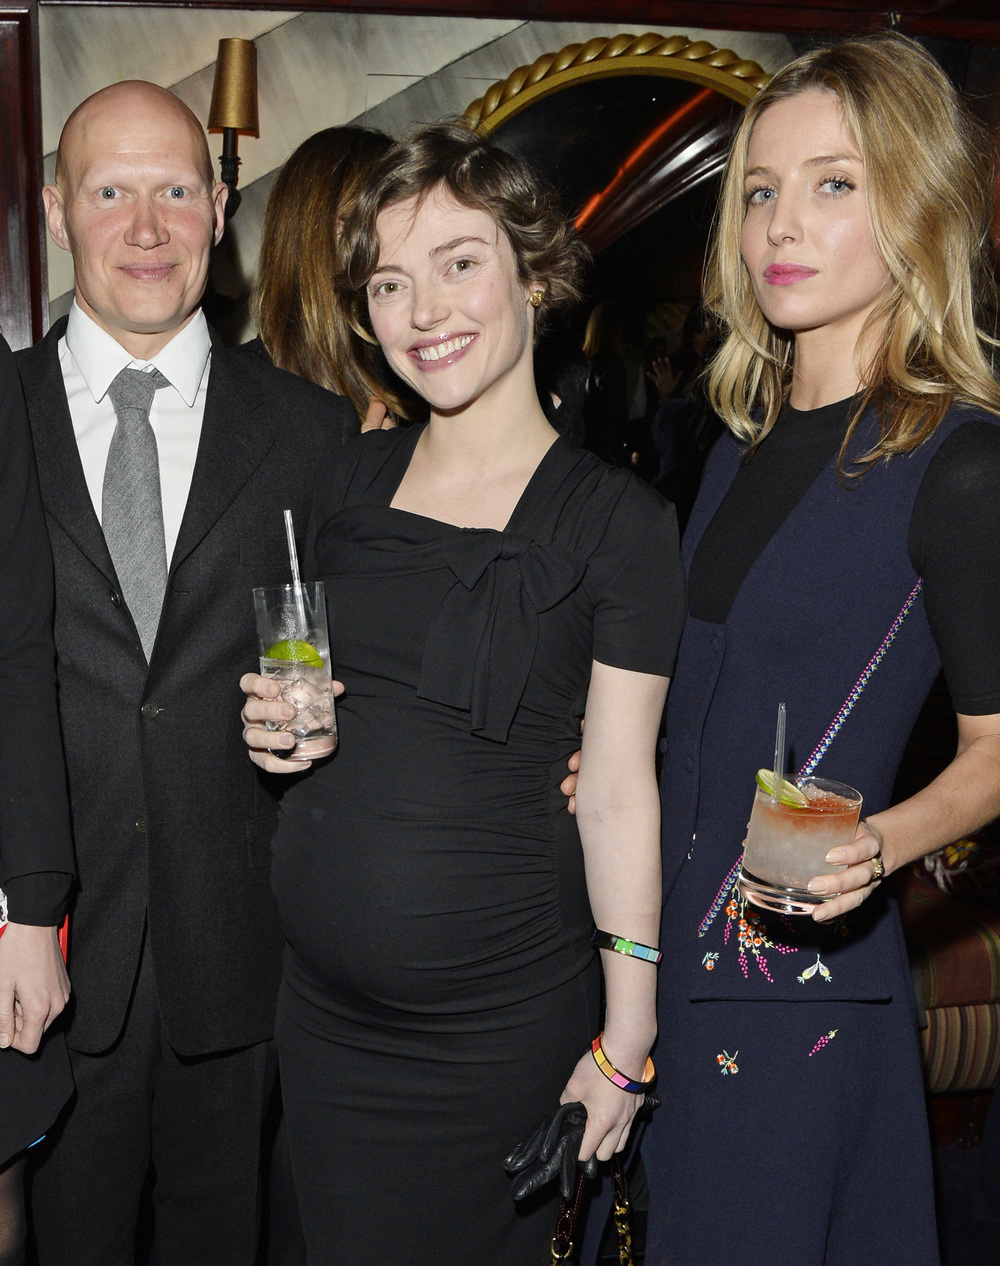 Dominic Burns, Camilla Rutherford & Anabelle Wallis .JPG